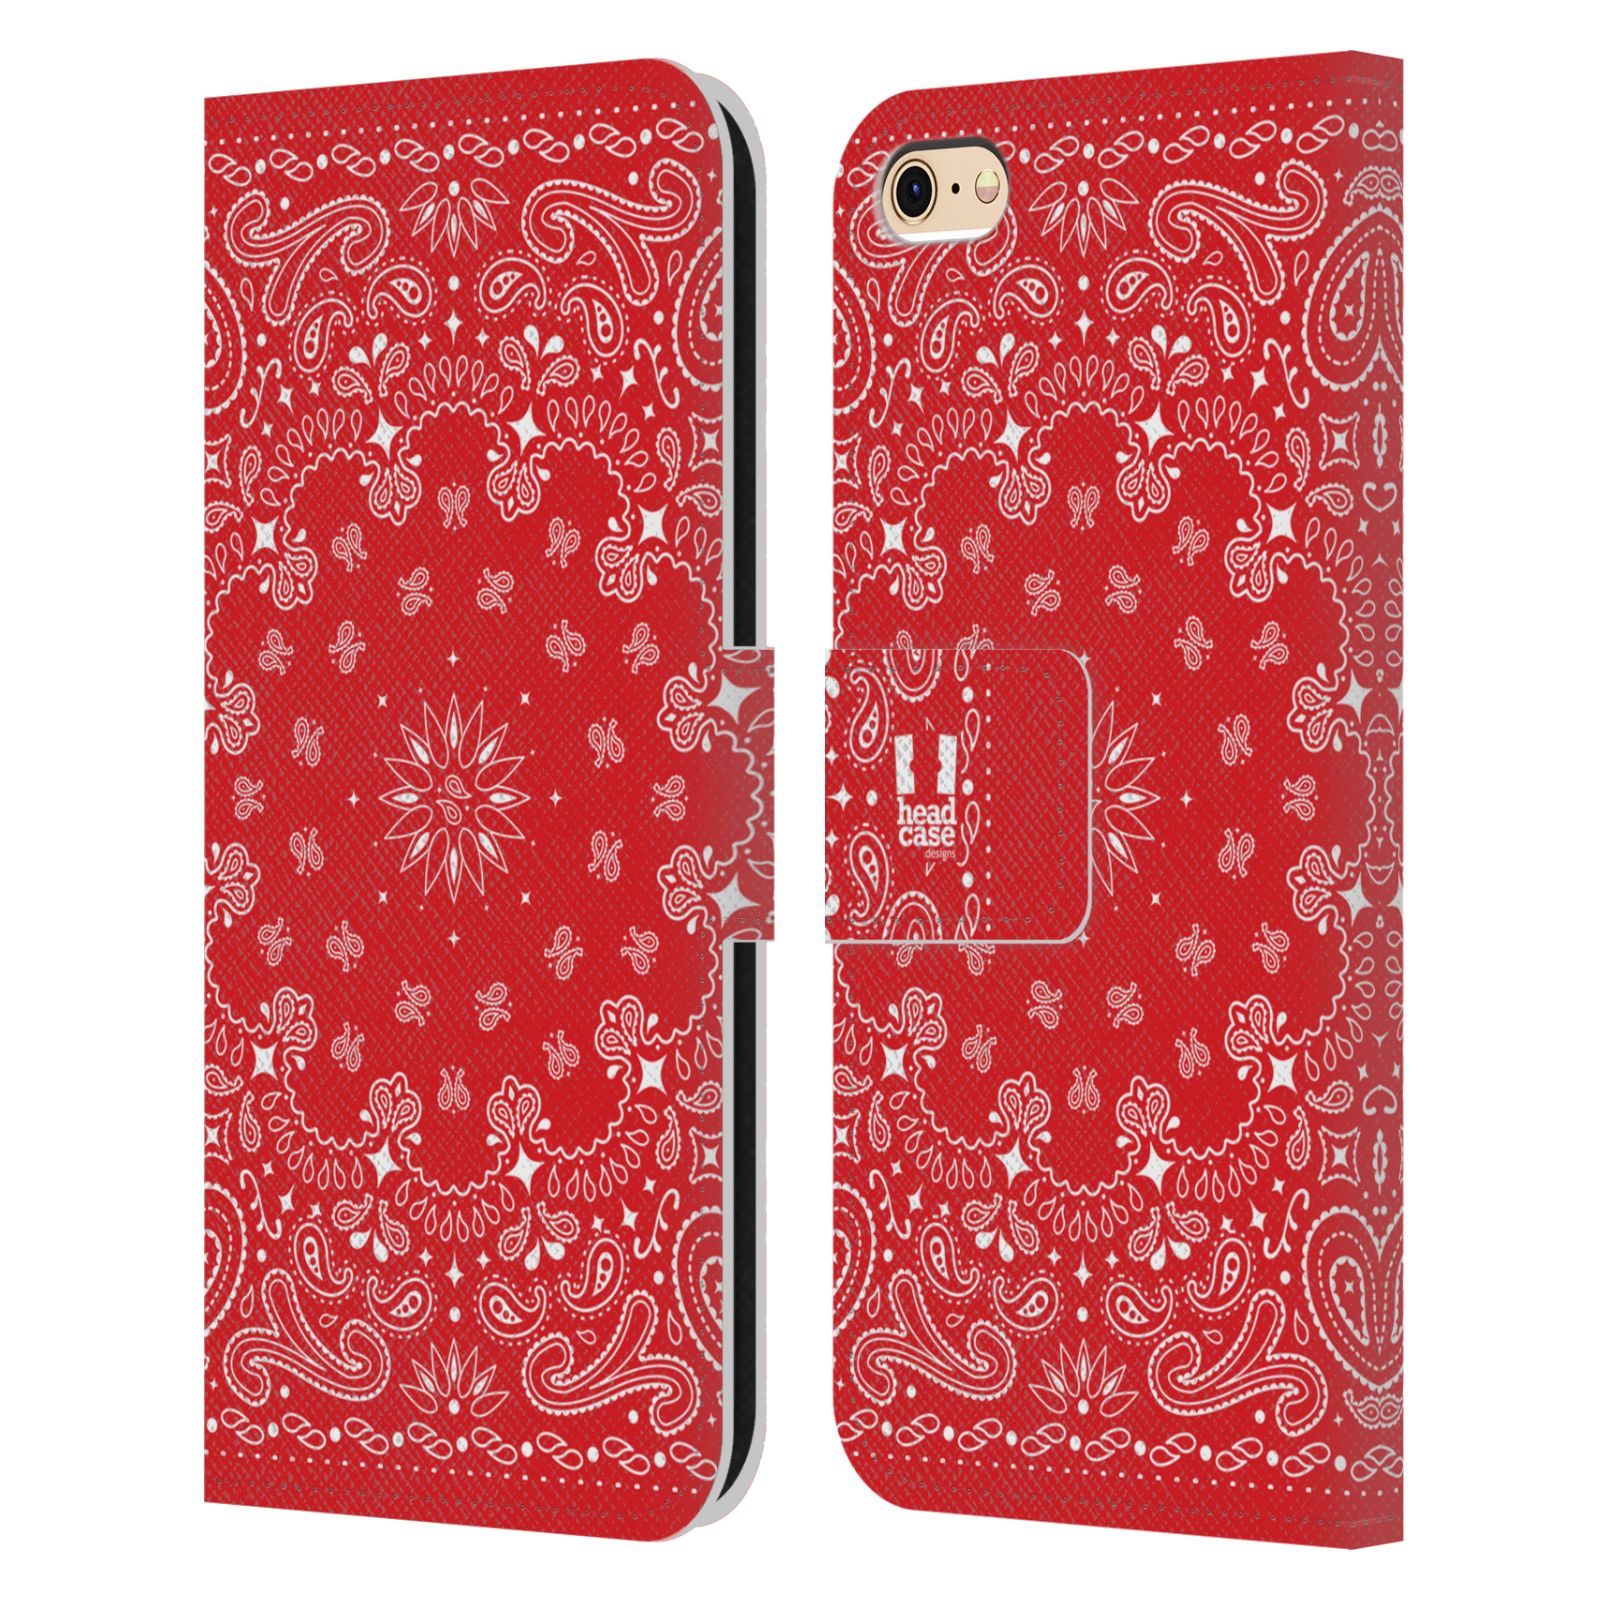 Classic Book Cover Phone Cases : Head case designs classic bandana leather book for